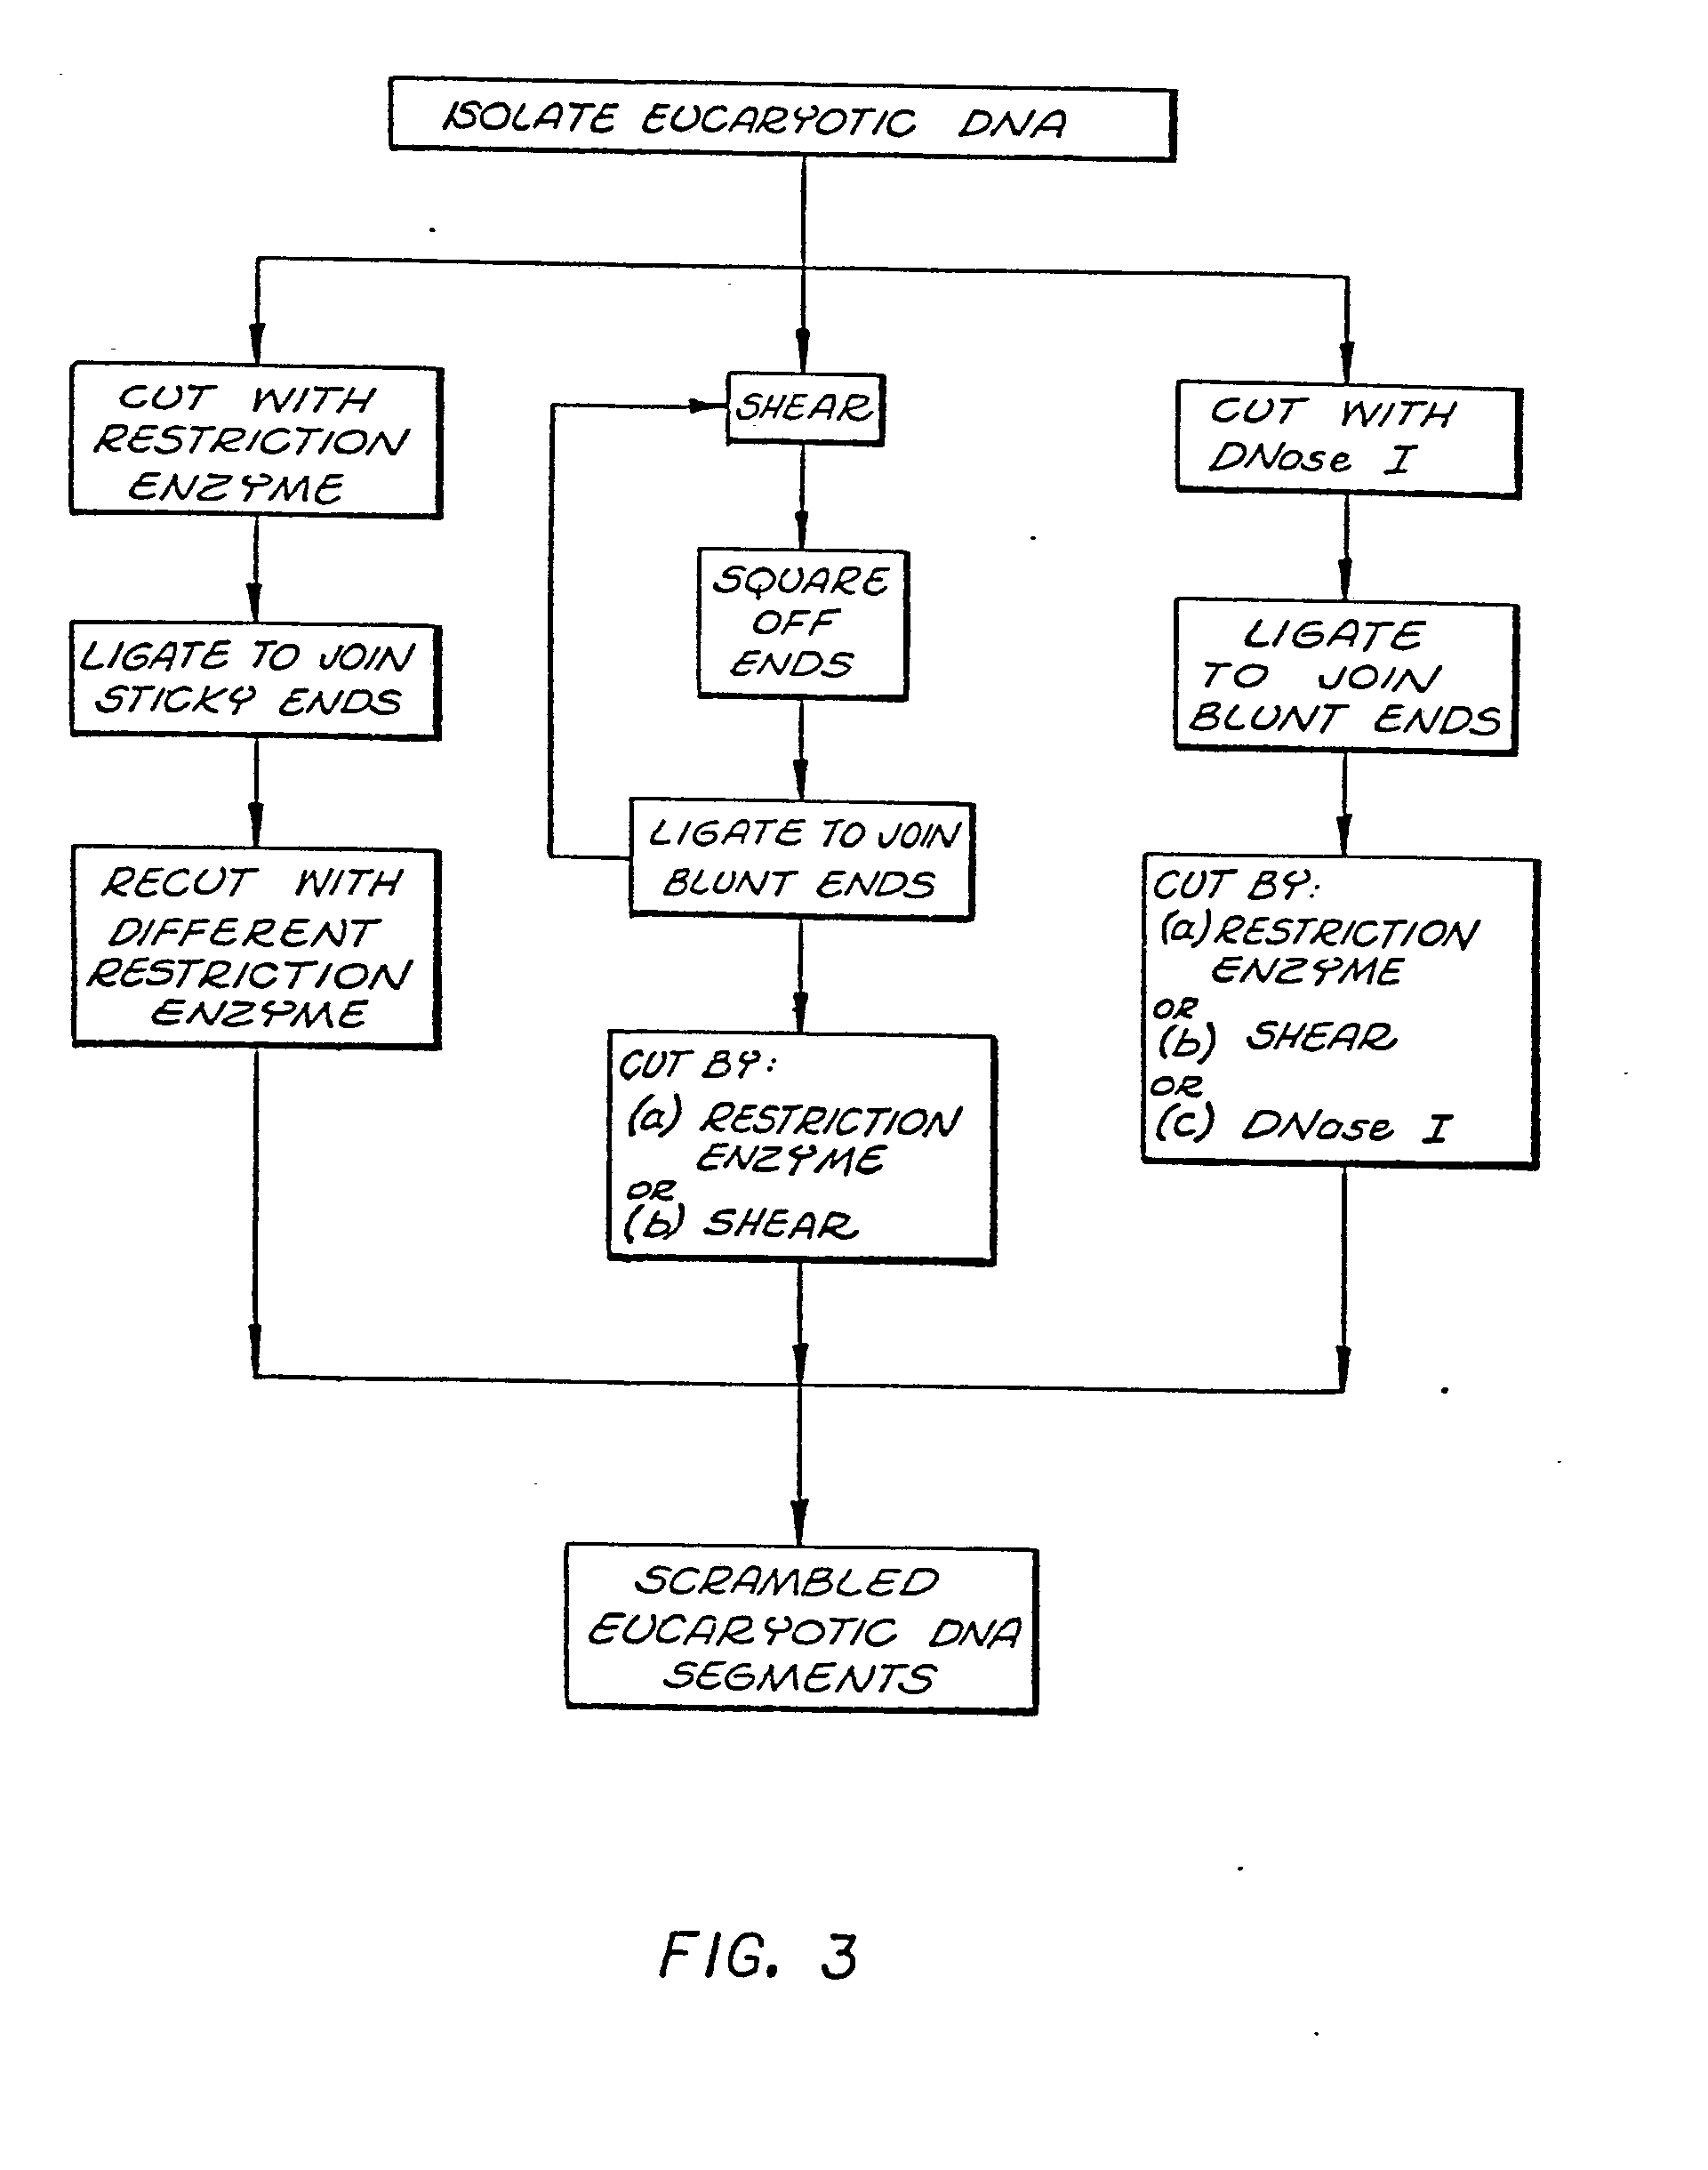 Flowchart of dna replication create a flowchart dna replication flowchart create a flowchart patent drawing nvjuhfo images pooptronica